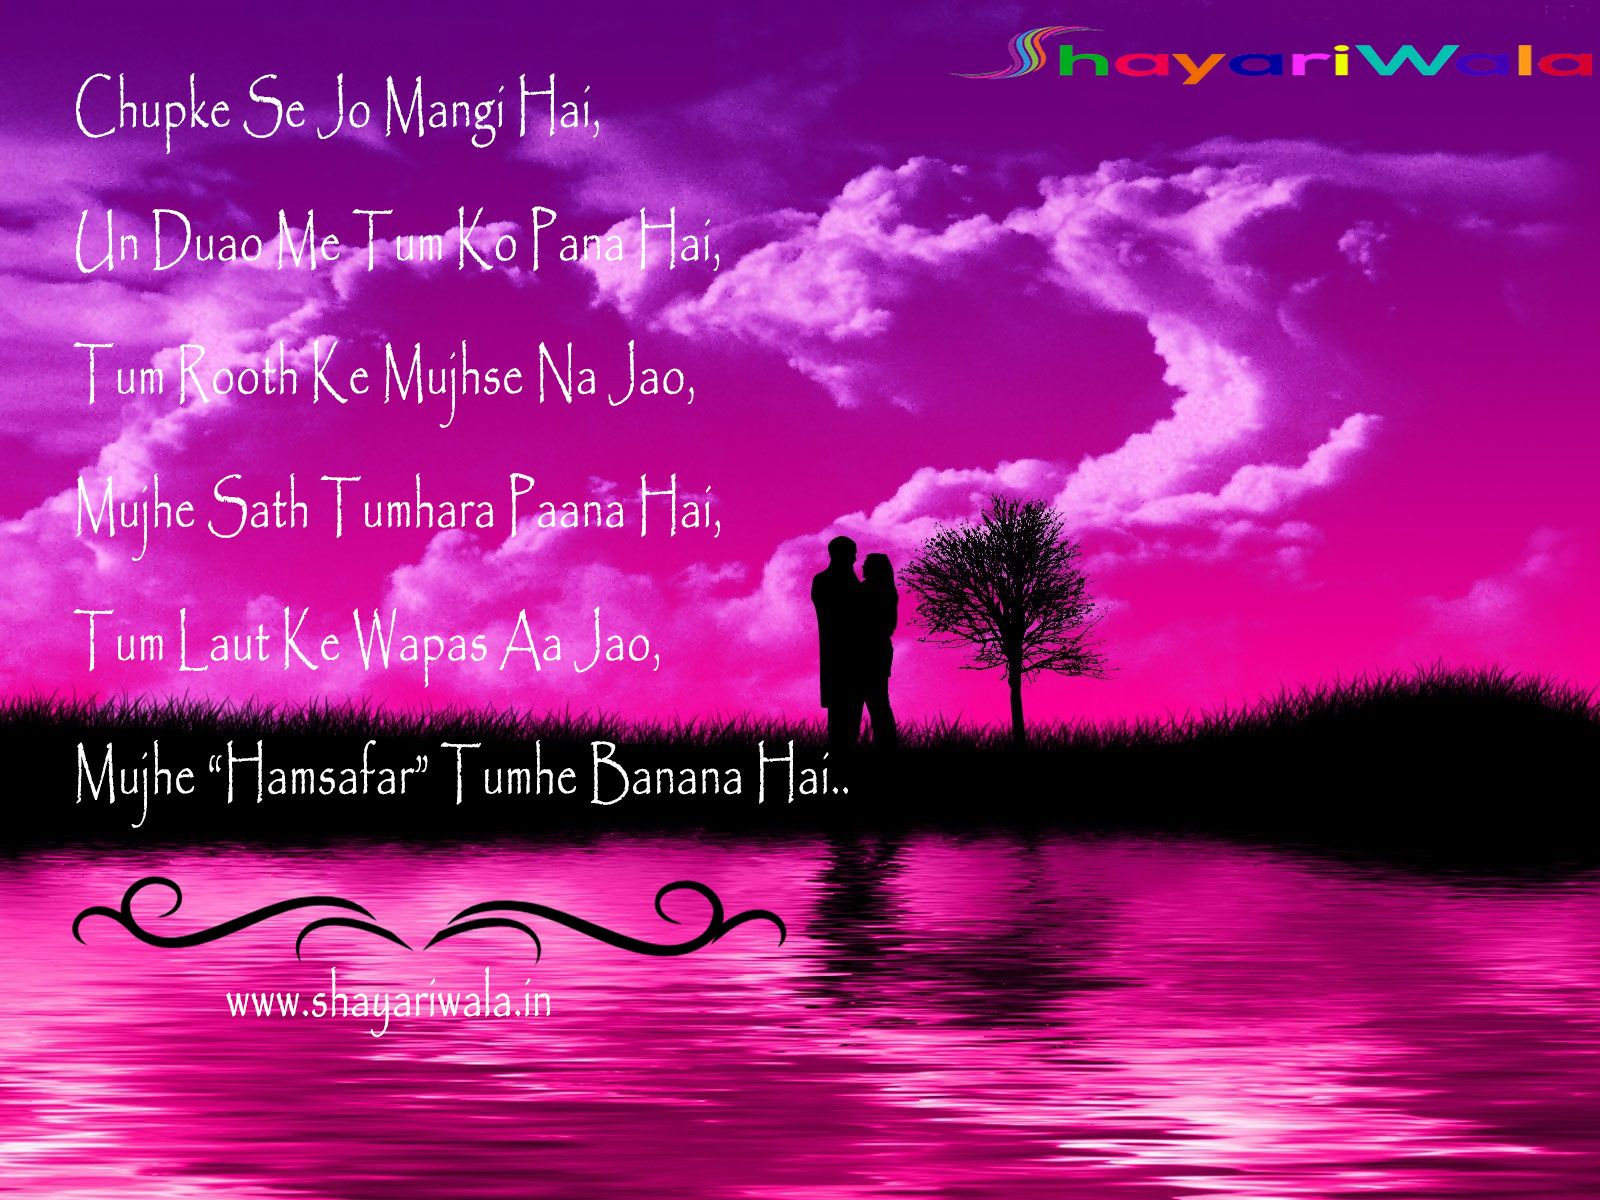 Wallpaper download love shayri - Explore Wallpaper Pc Wallpaper Pictures And More Love Shayari